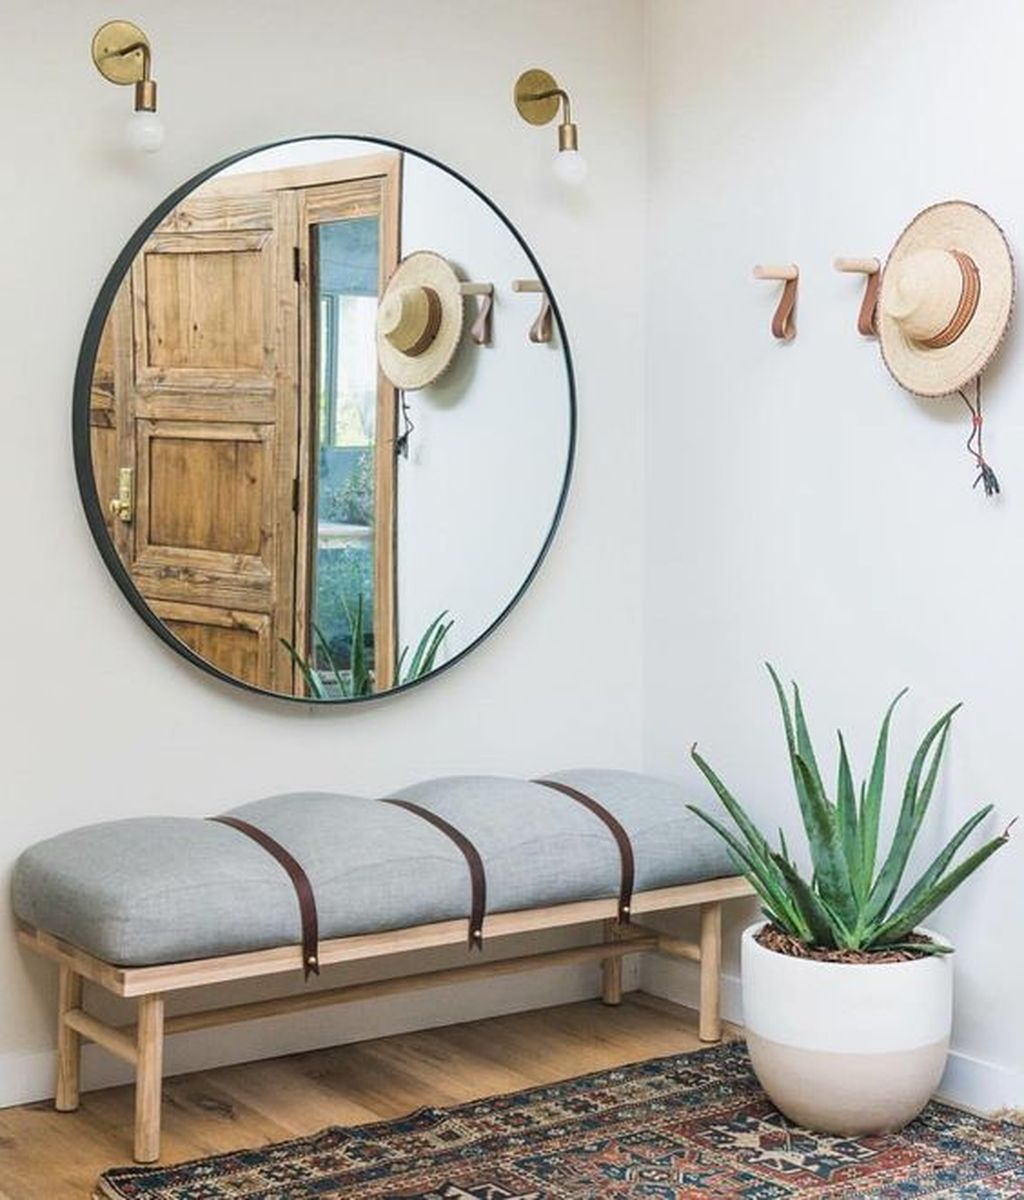 Popular Entryway Decor Ideas You Should Copy Now 16